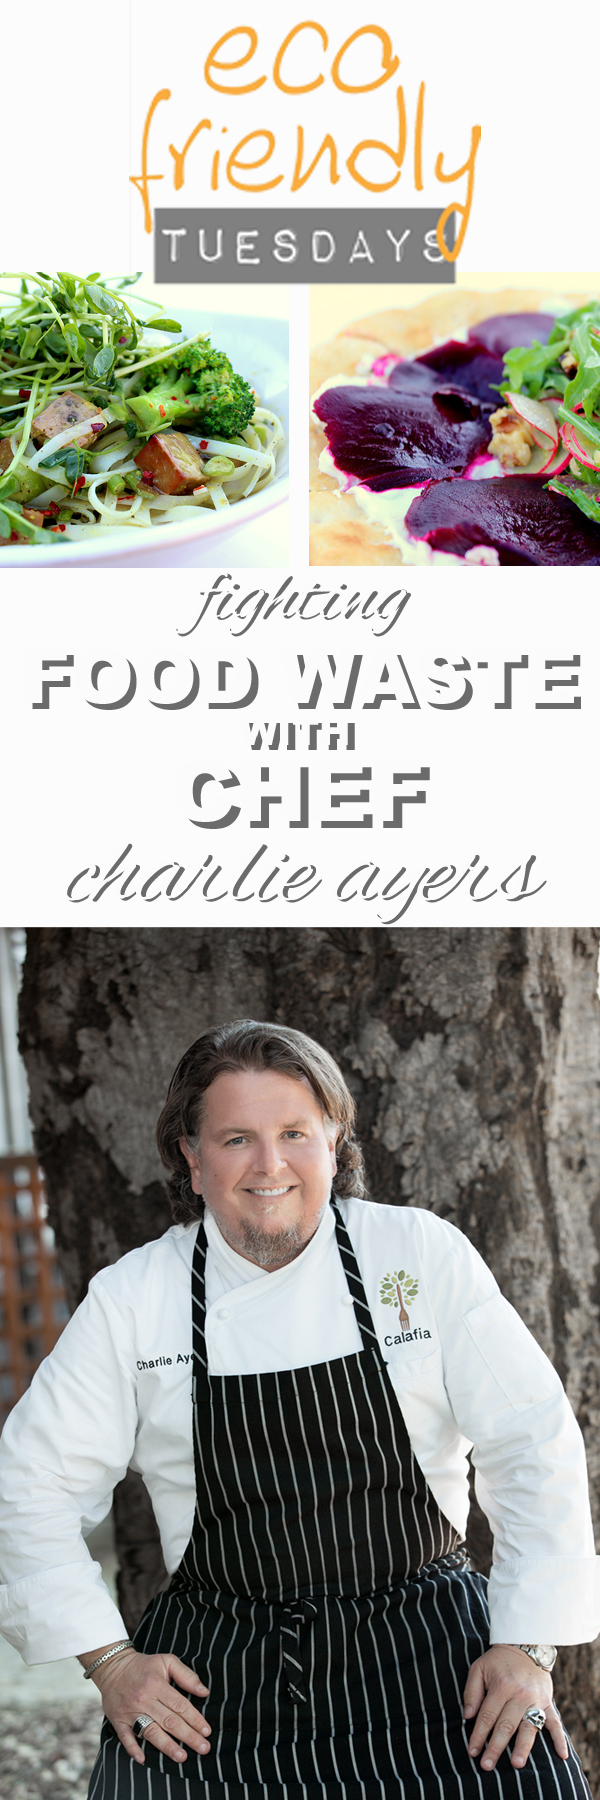 Learn about food waste with Charlie Ayers the head chef at Google and now his own restaurant Califia Cafe with www.goingzerowaste.com